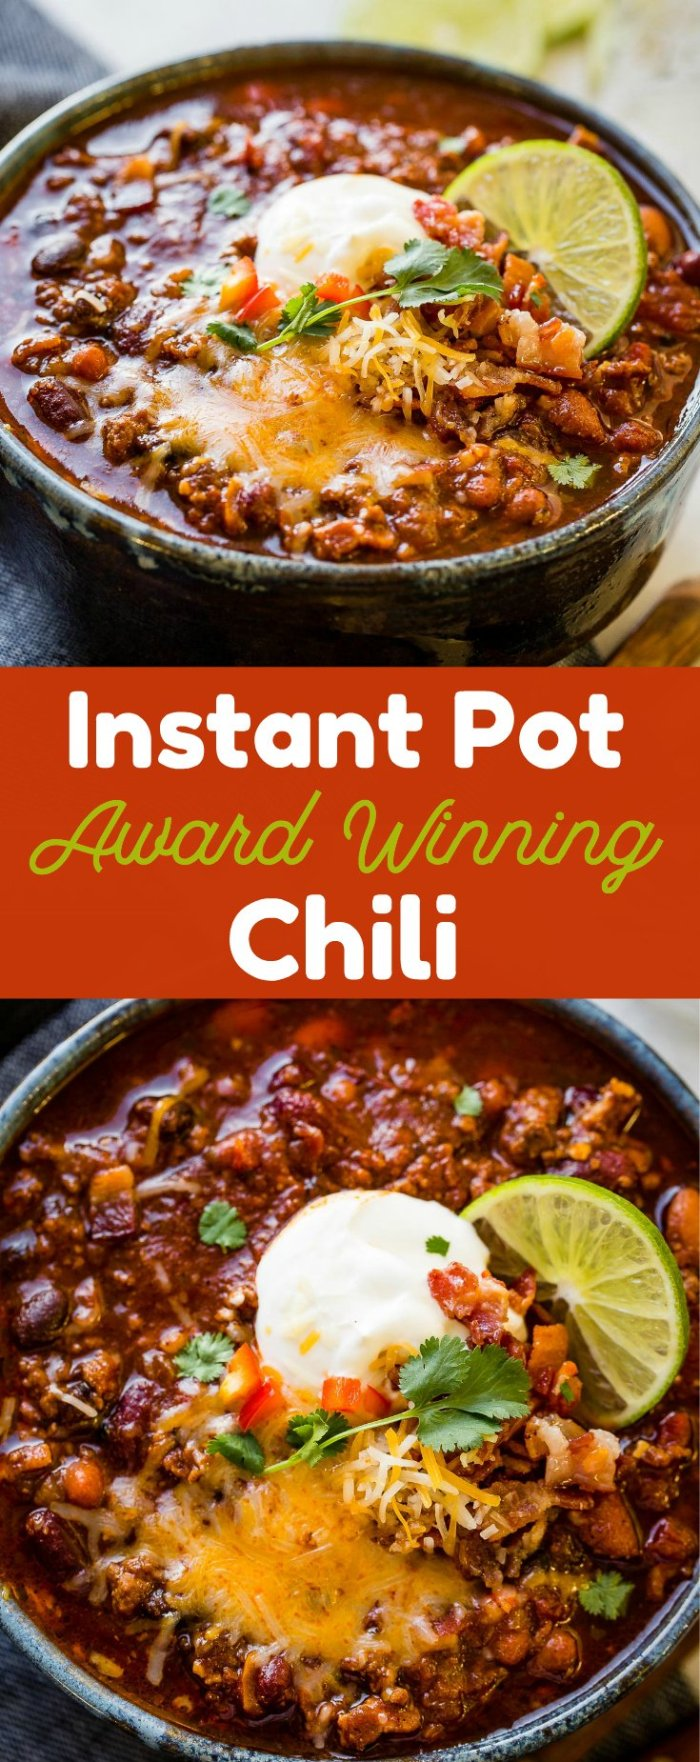 Instant Pot Chili that is award winning and bringing home chili cook-off victories across the country. You don't want to miss diving into a bowl of our best chili recipe!